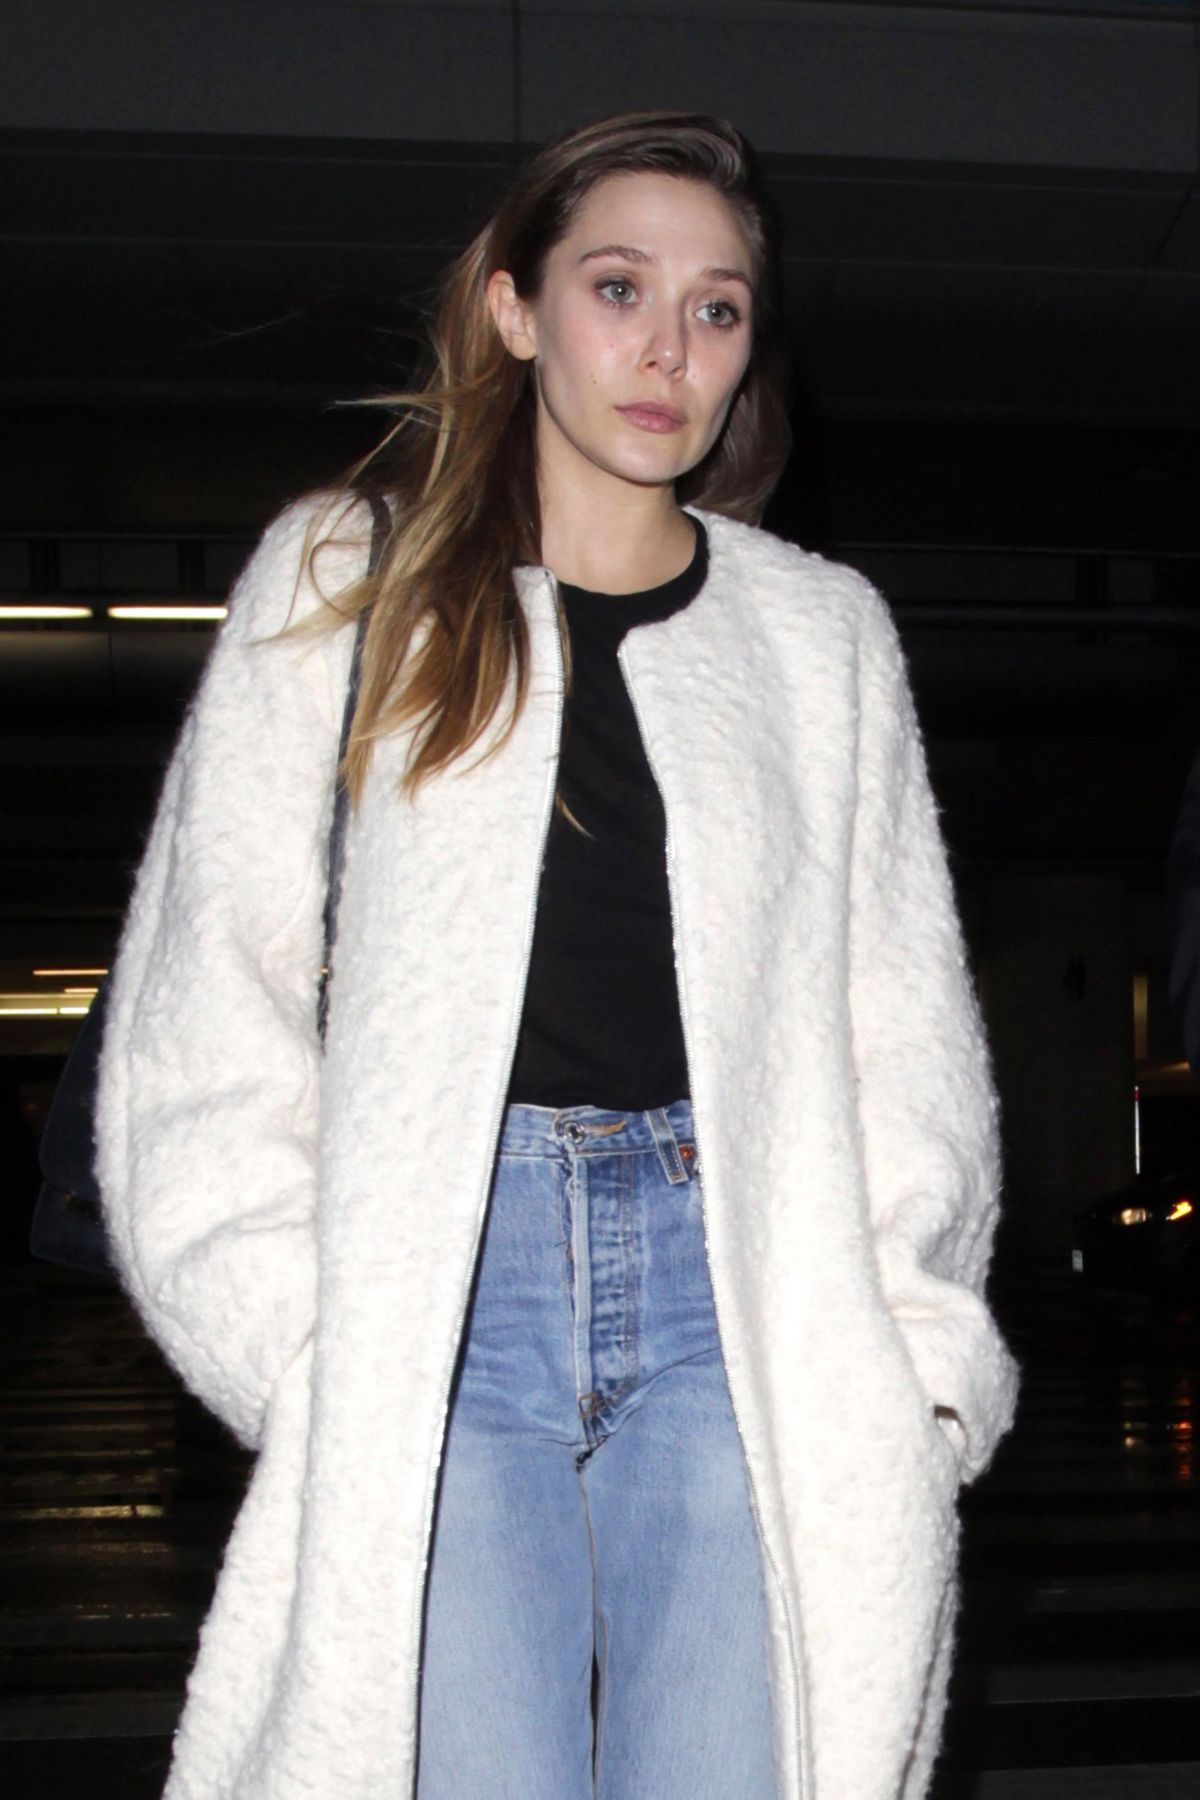 ELIZABETH OLSEN at LAX Airport in Los Angeles 01/22/2017